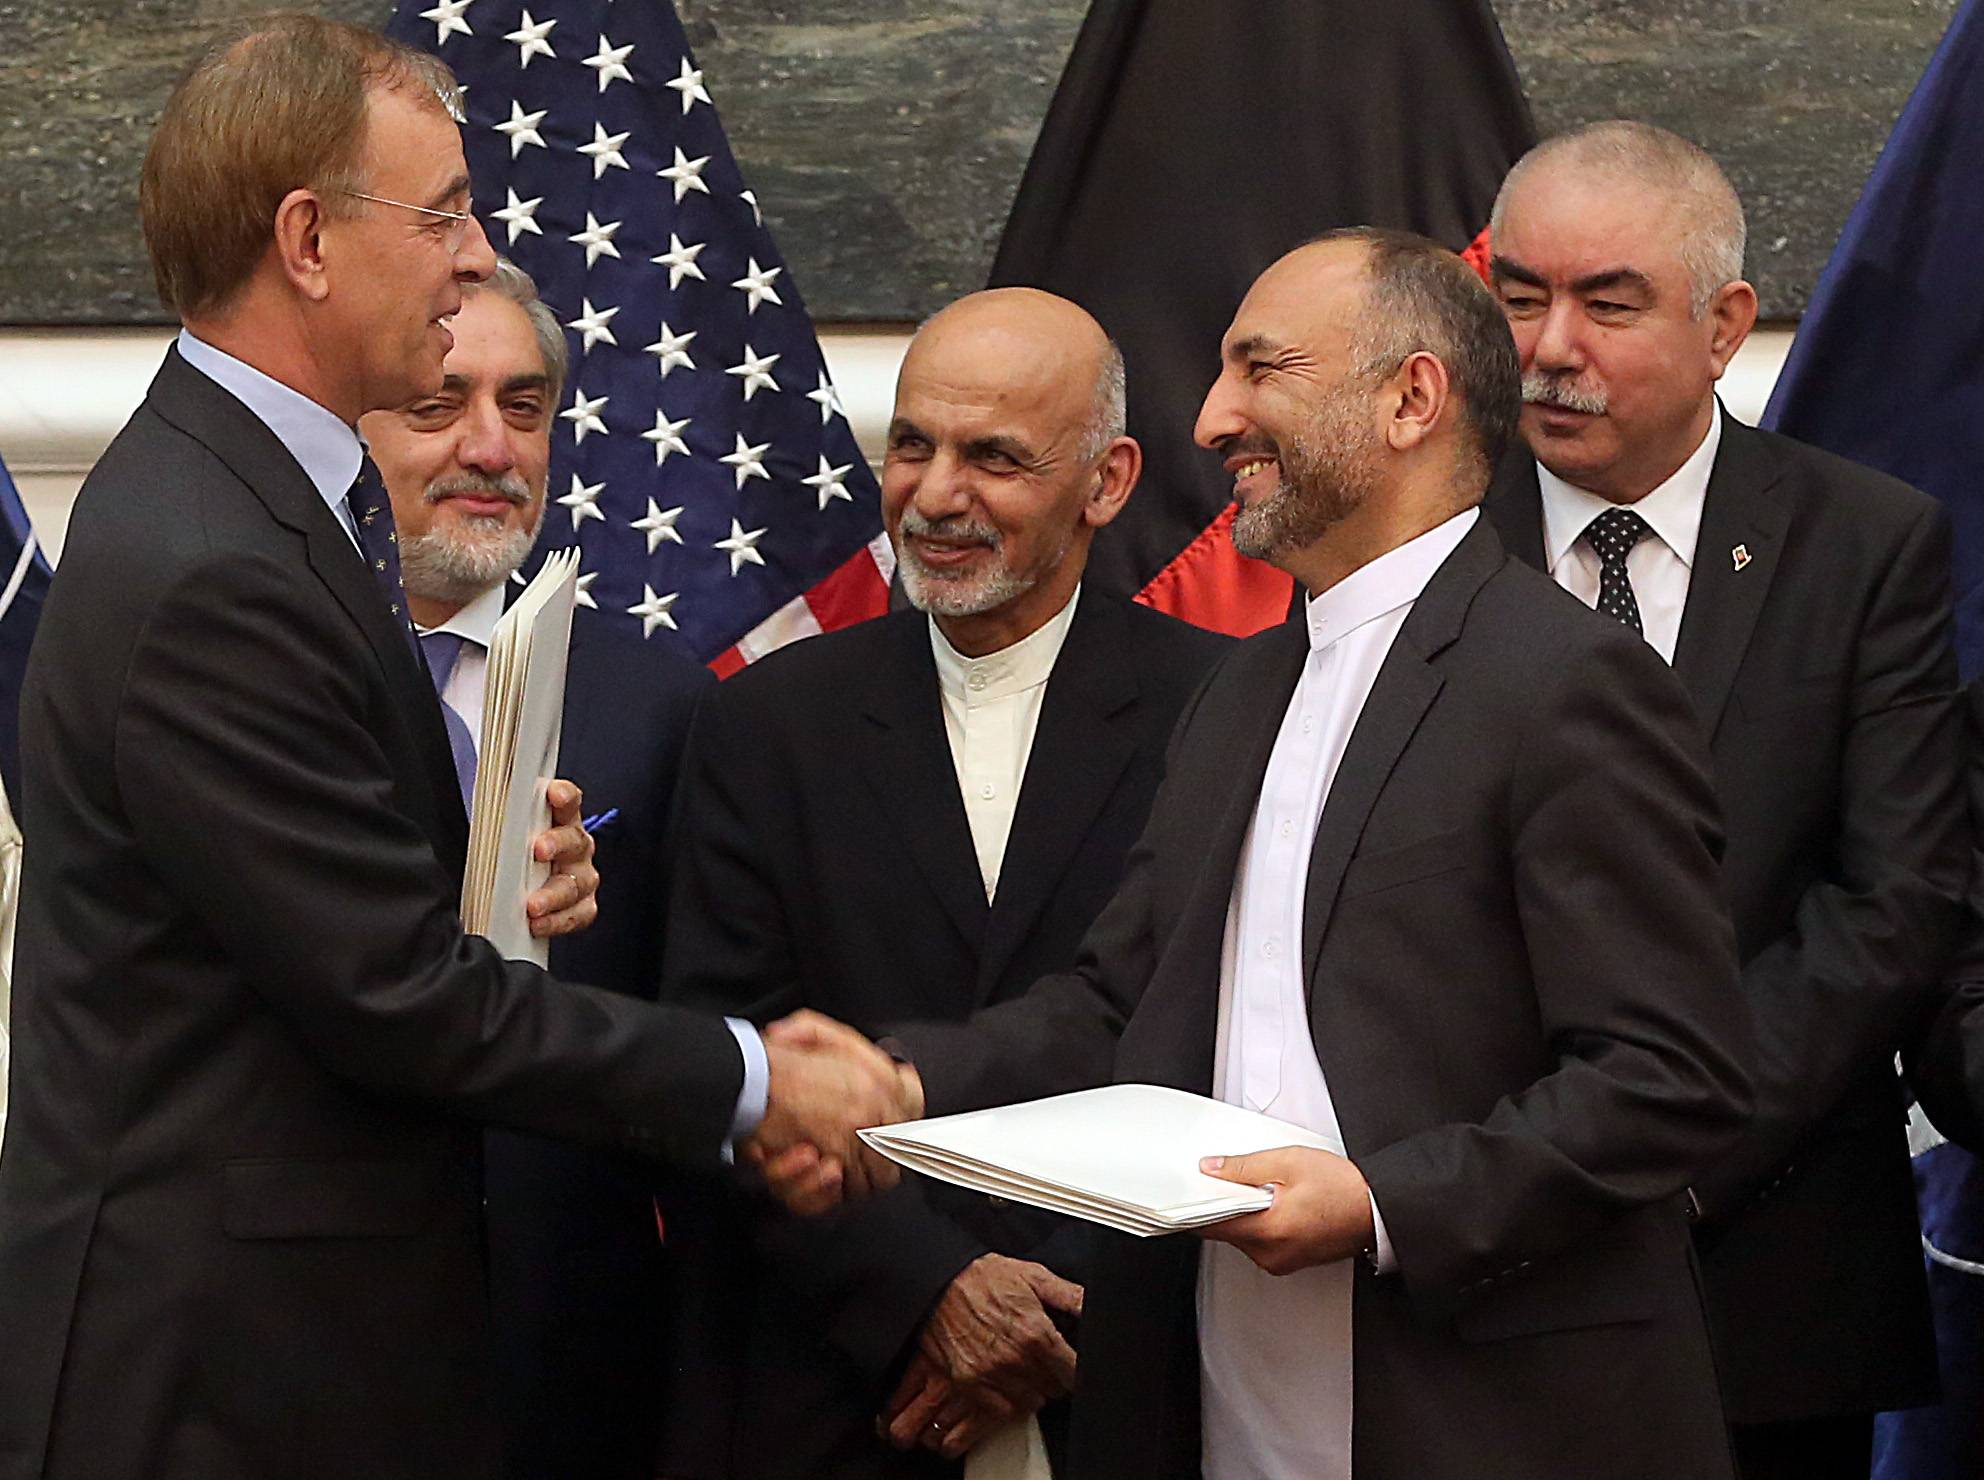 Afghanistan and the United States signed a long-awaited security pact on Tuesday that will allow U.S. forces to remain in the country past the end of year.